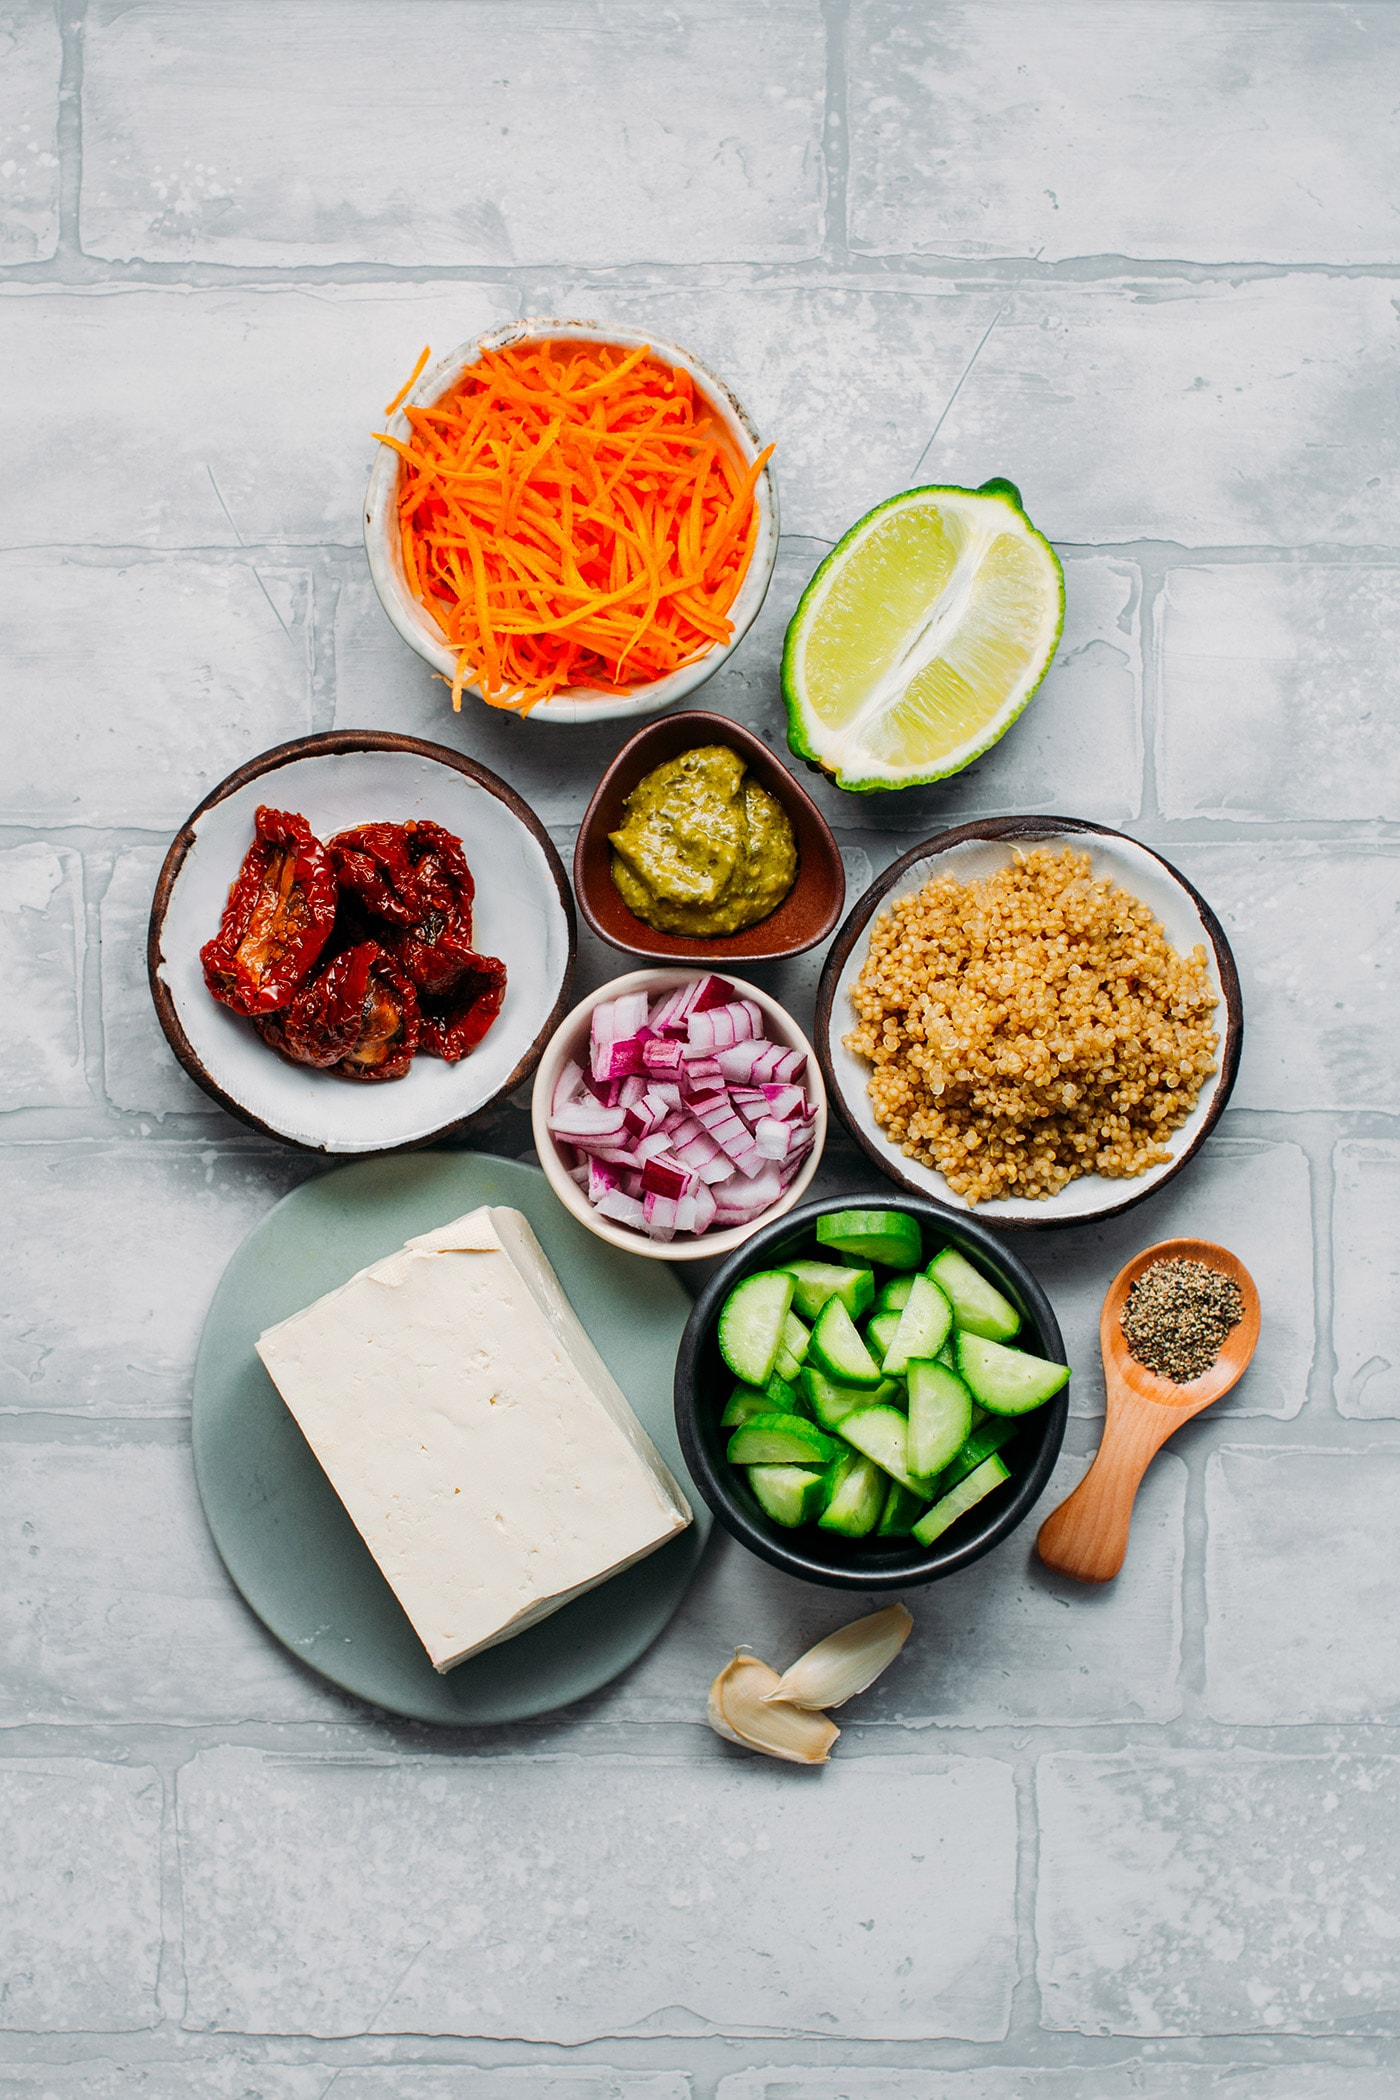 Ingredients to make a quinoa pesto salad with baked tofu.